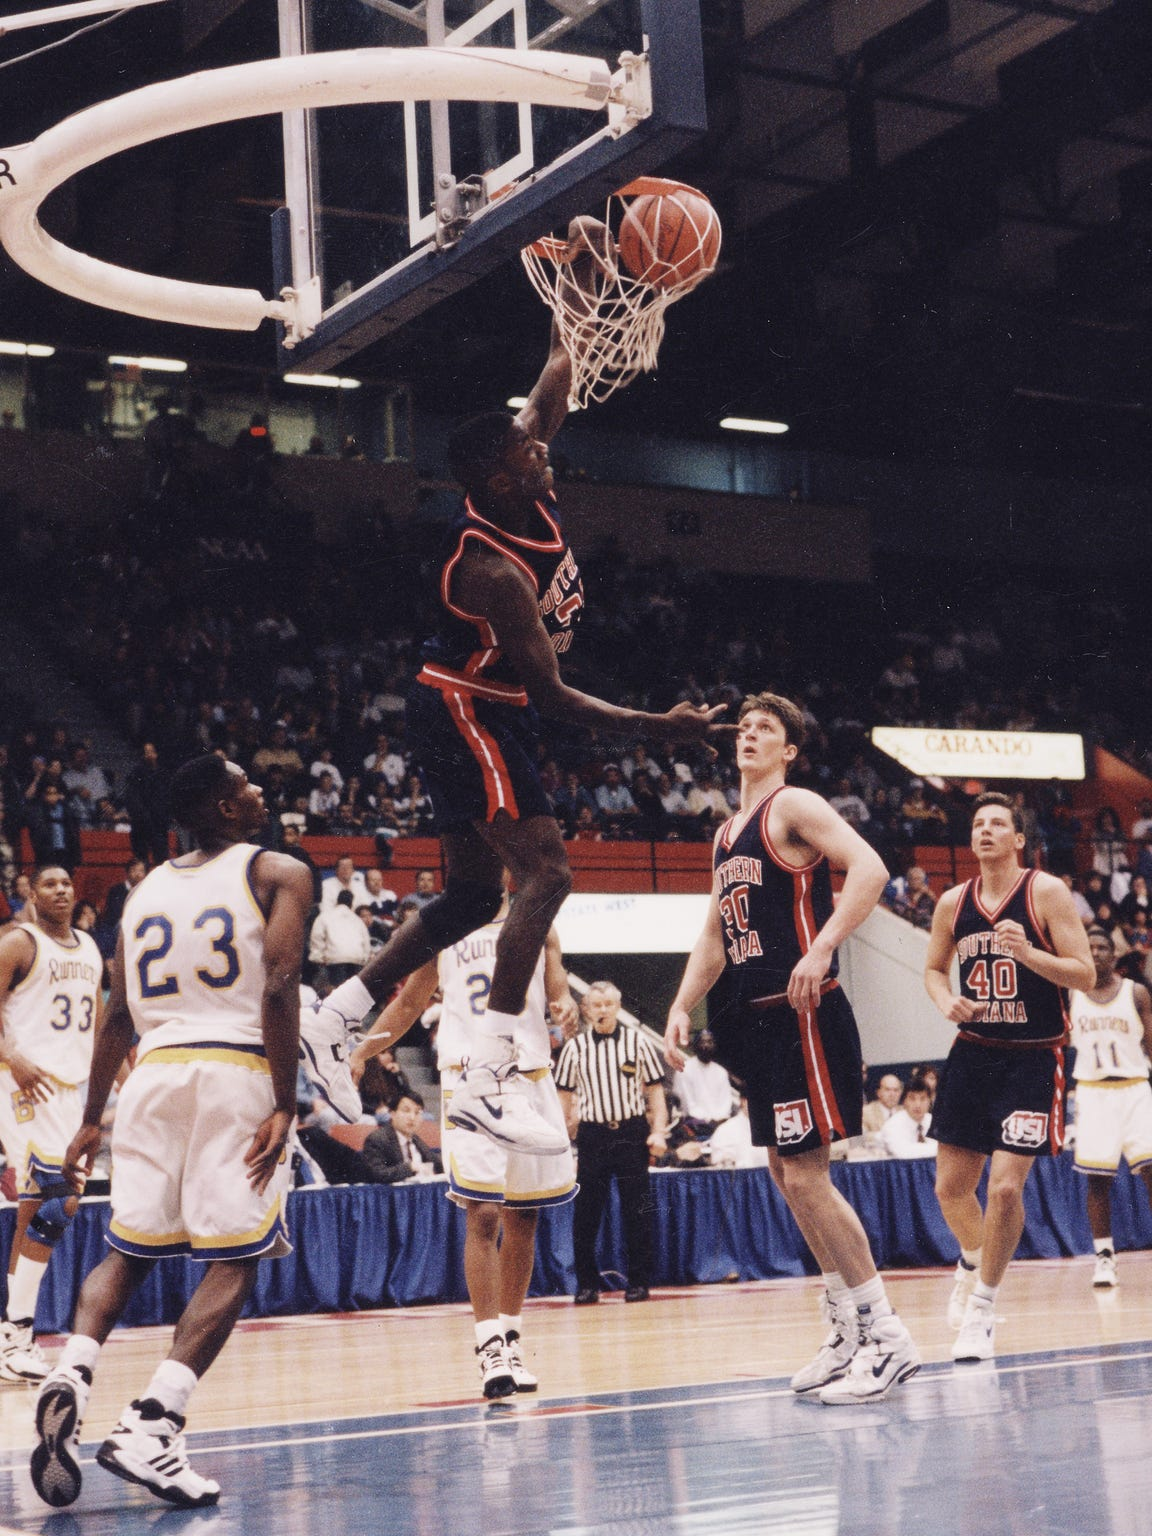 USI's Stan Gouard dunks during the 1994 Elite Eight. He was named the Chevrolet Player of the Game in the national title game.